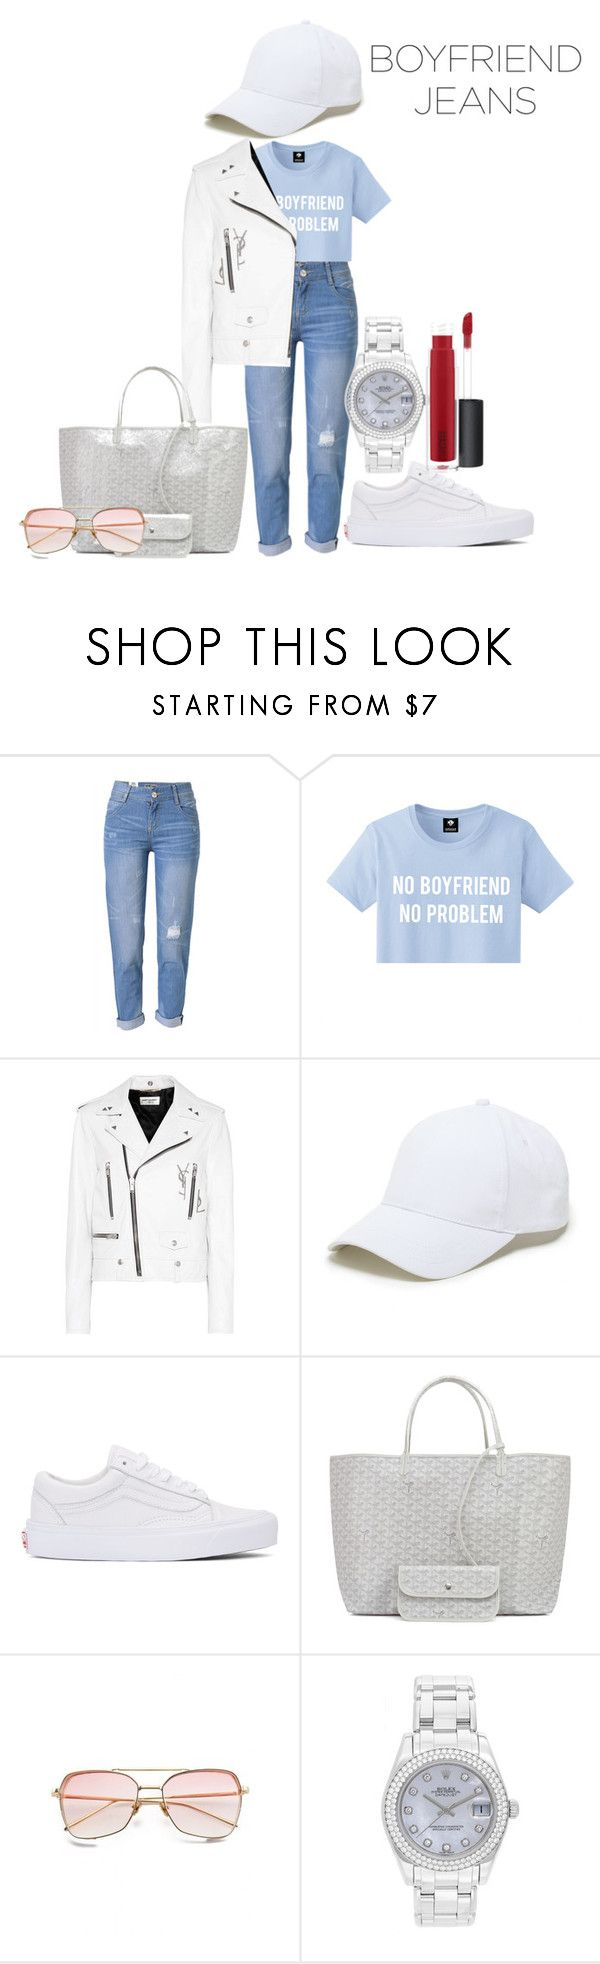 """No boyfriend!"" by babyanj ❤ liked on Polyvore featuring WithChic, Yves Saint Laurent, Sole Society, Vans, Goyard, Rolex and MAC Cosmetics"